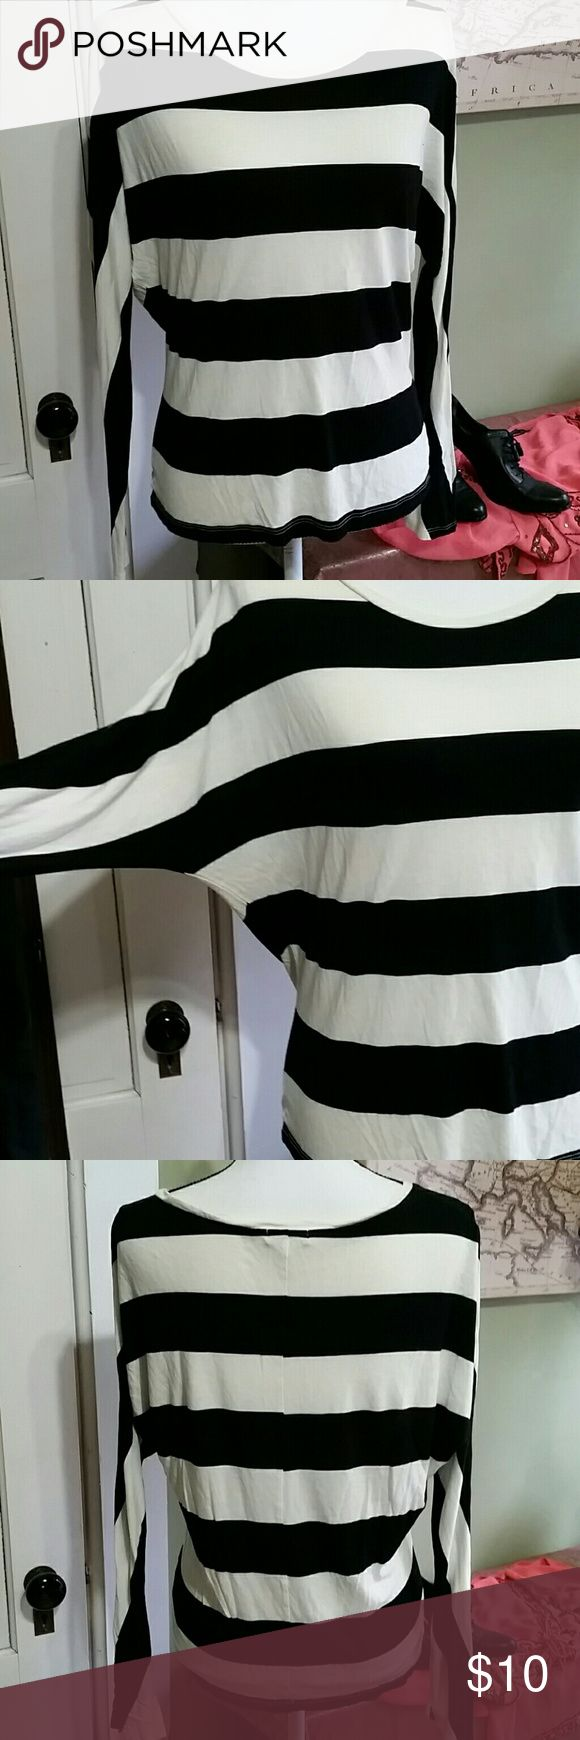 Striped long sleeve bat wing top Old Navy long sleeve bat wing jersey black and off white never worn size sp Old Navy Tops Tees - Long Sleeve